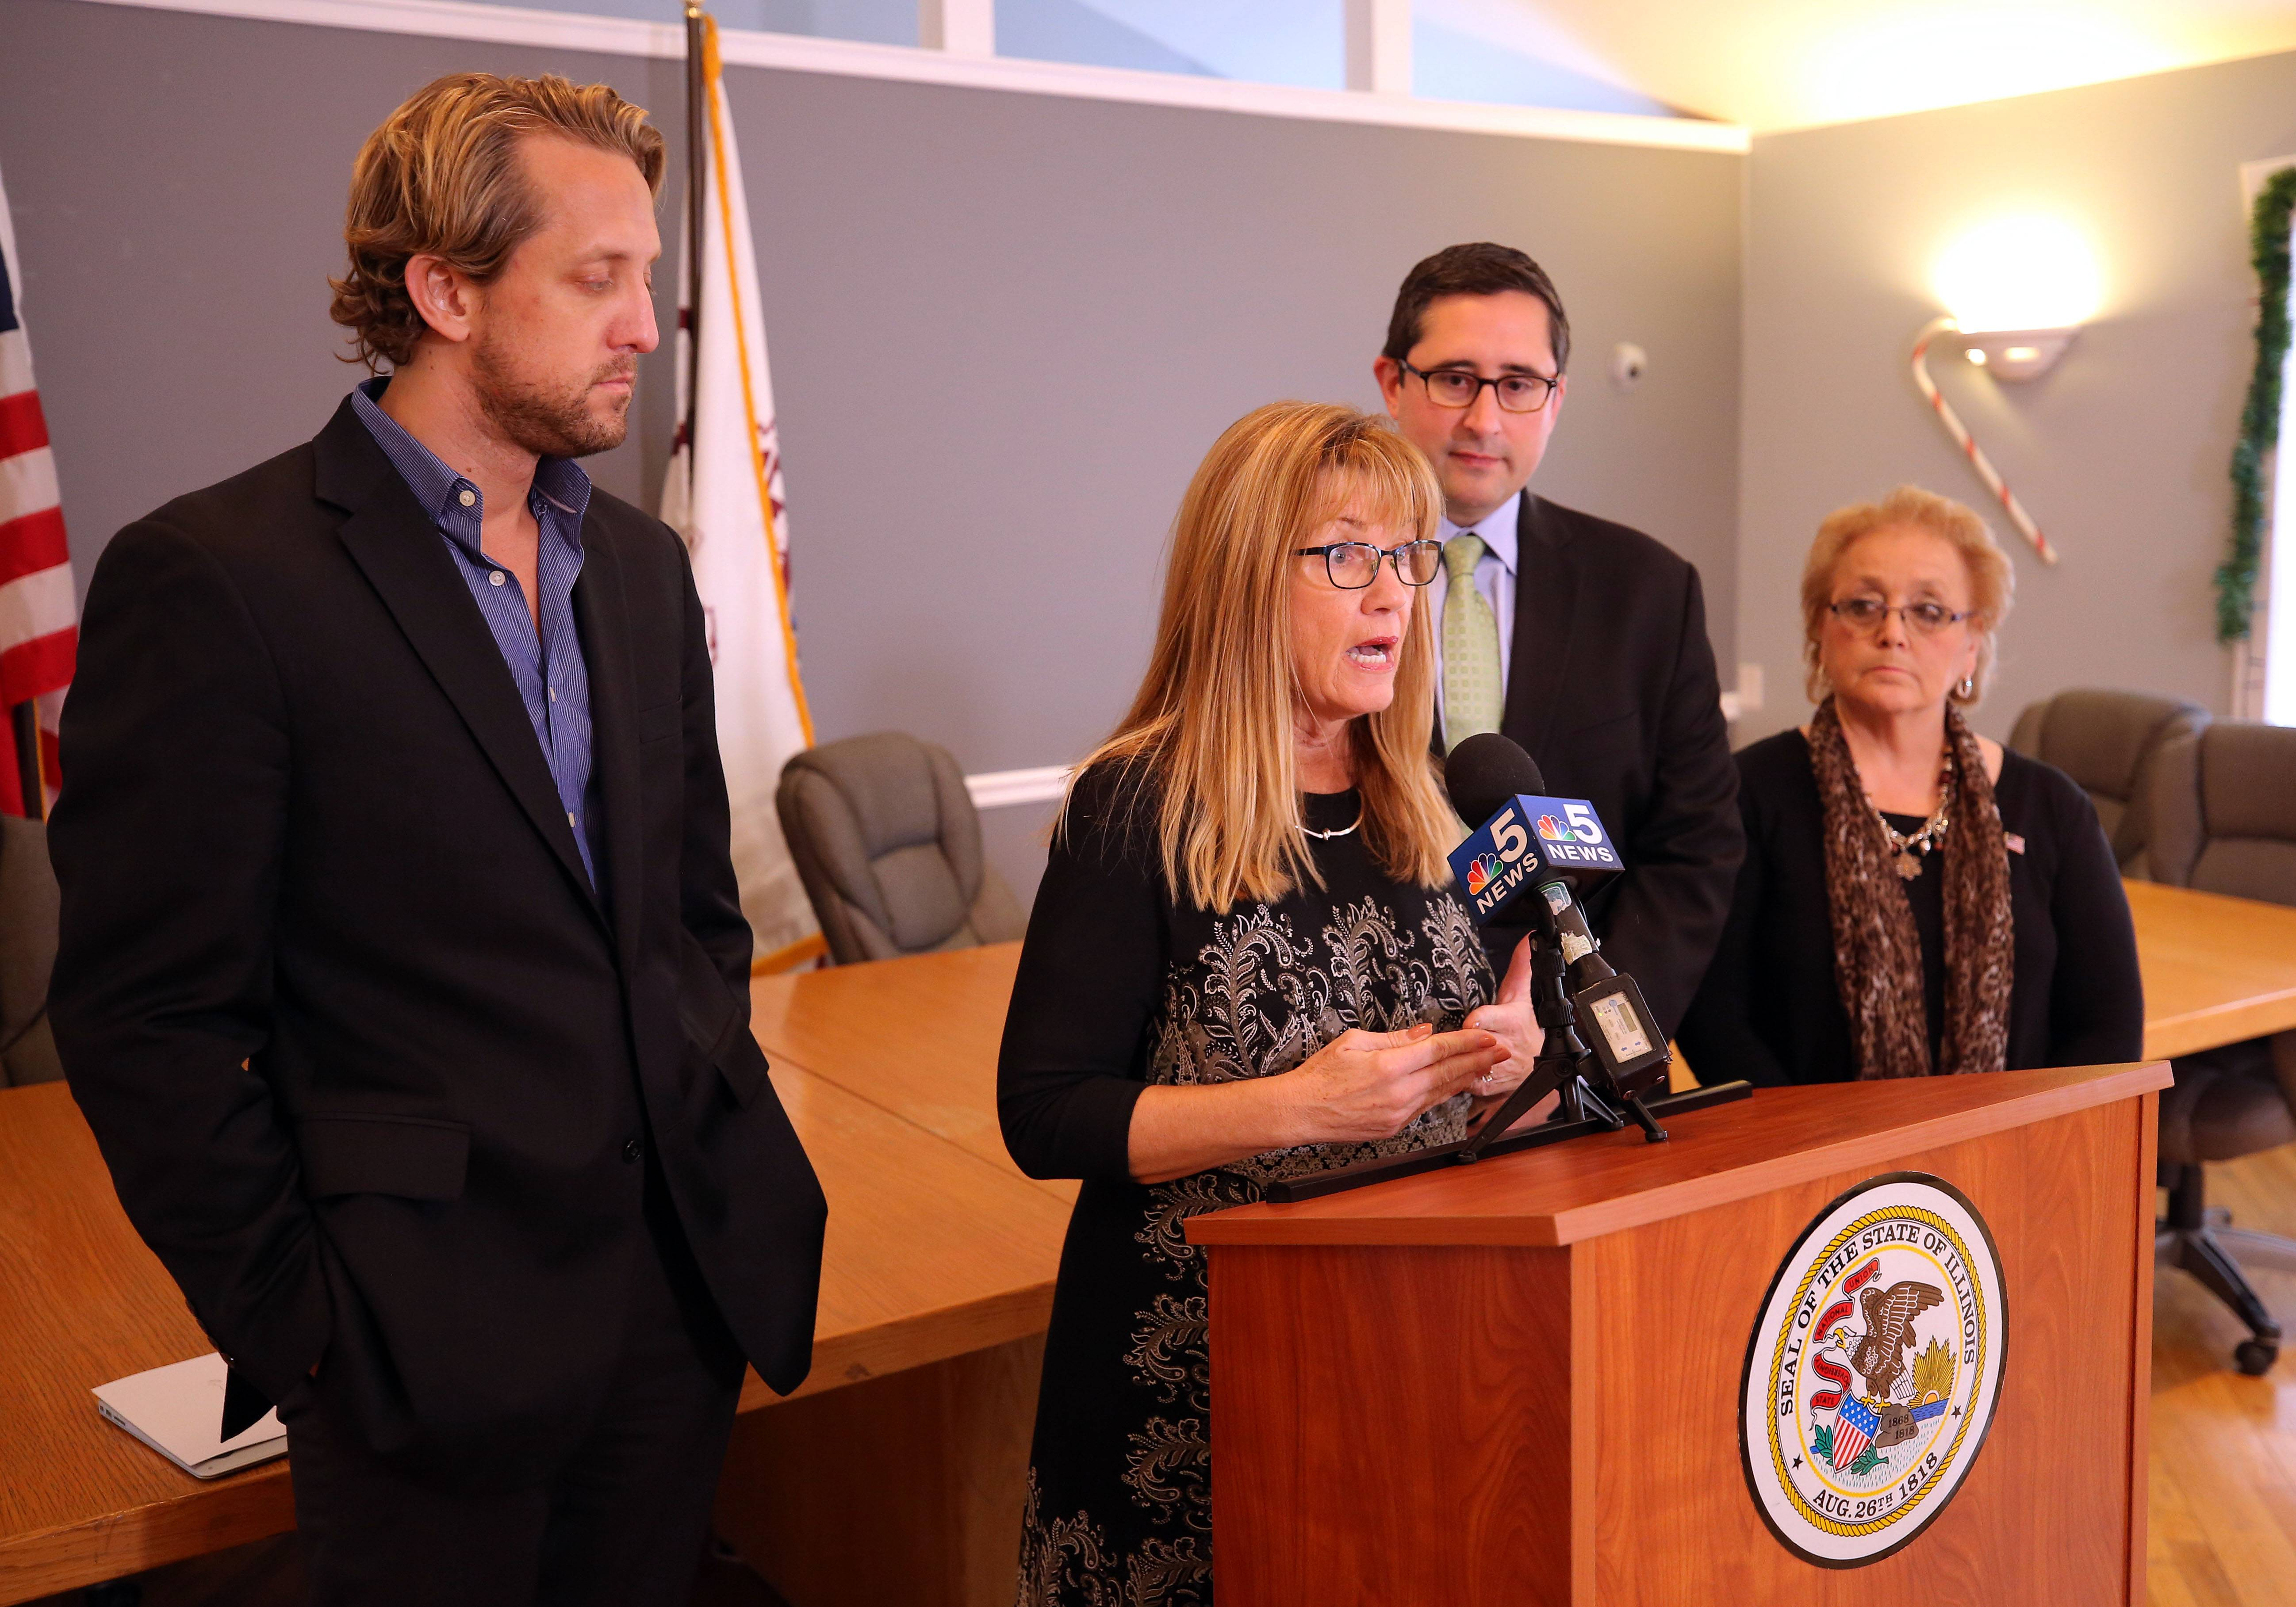 From left, Lake County Board Chairman Aaron Lawlor, state Sen. Melinda Bush, state Rep. Sam Yingling and Round Lake Park Mayor Linda Lucassen at a news conference Thursday to discuss the new law which provides tax relief to local flood victims.